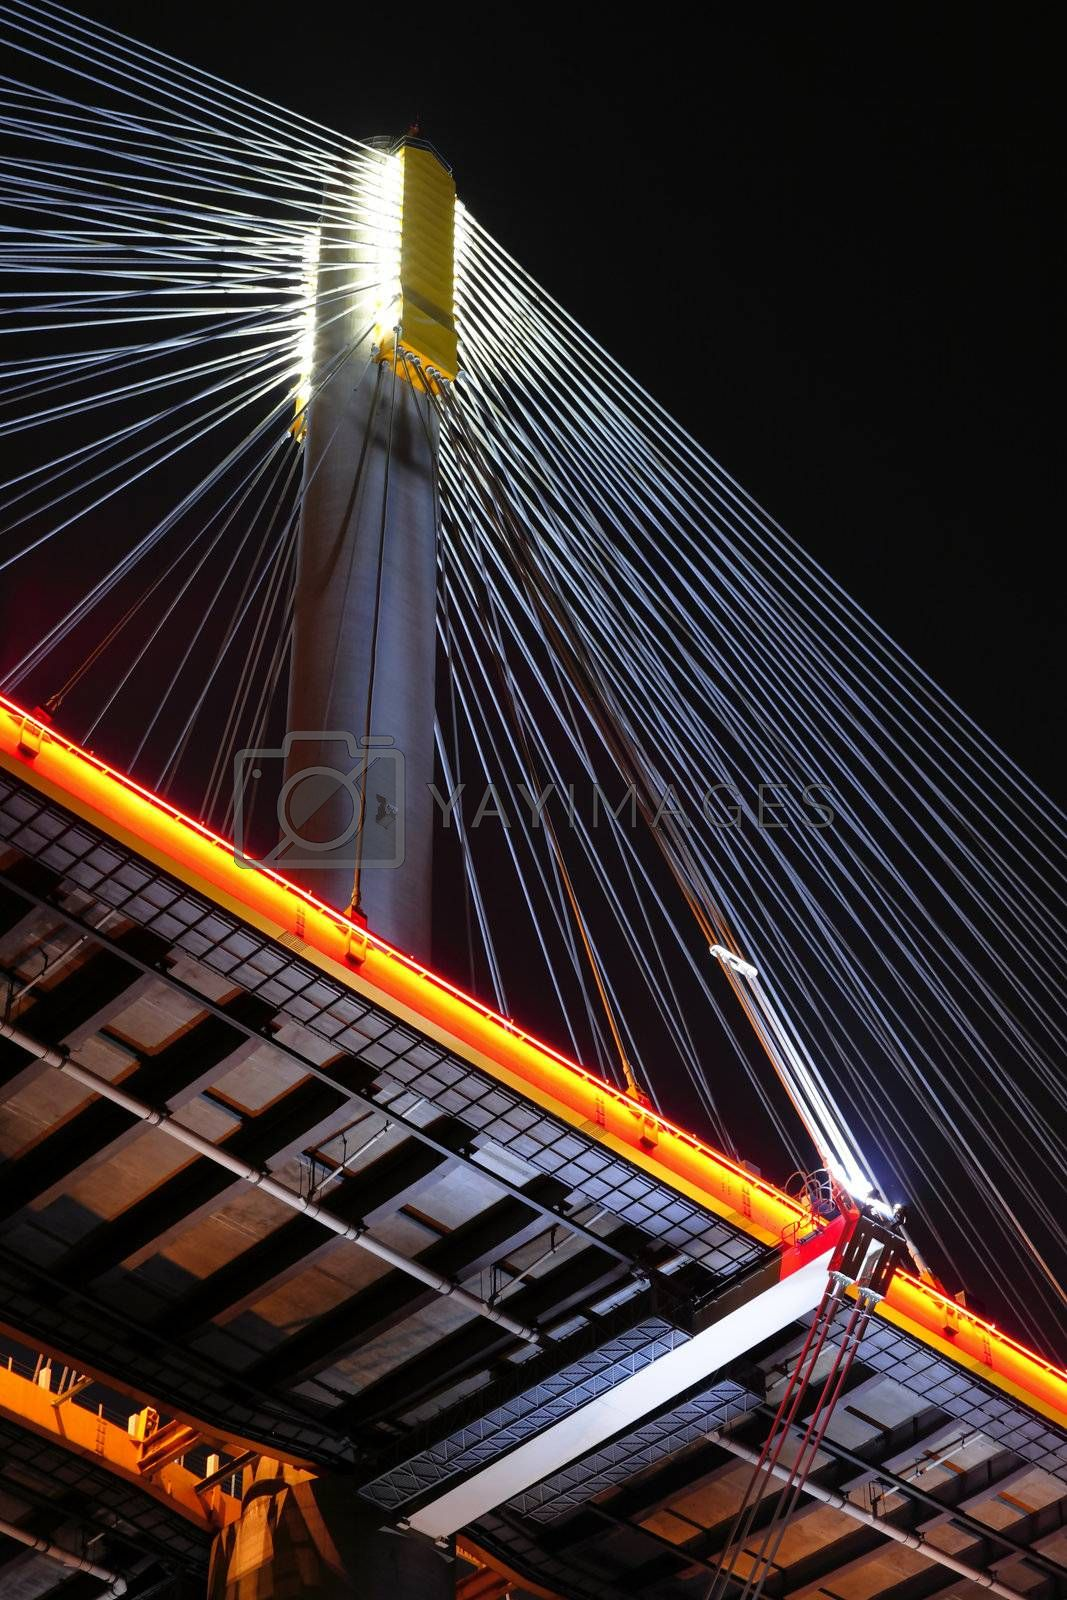 Royalty free image of Ting Kau Bridge at night, in Hong Kong by leungchopan